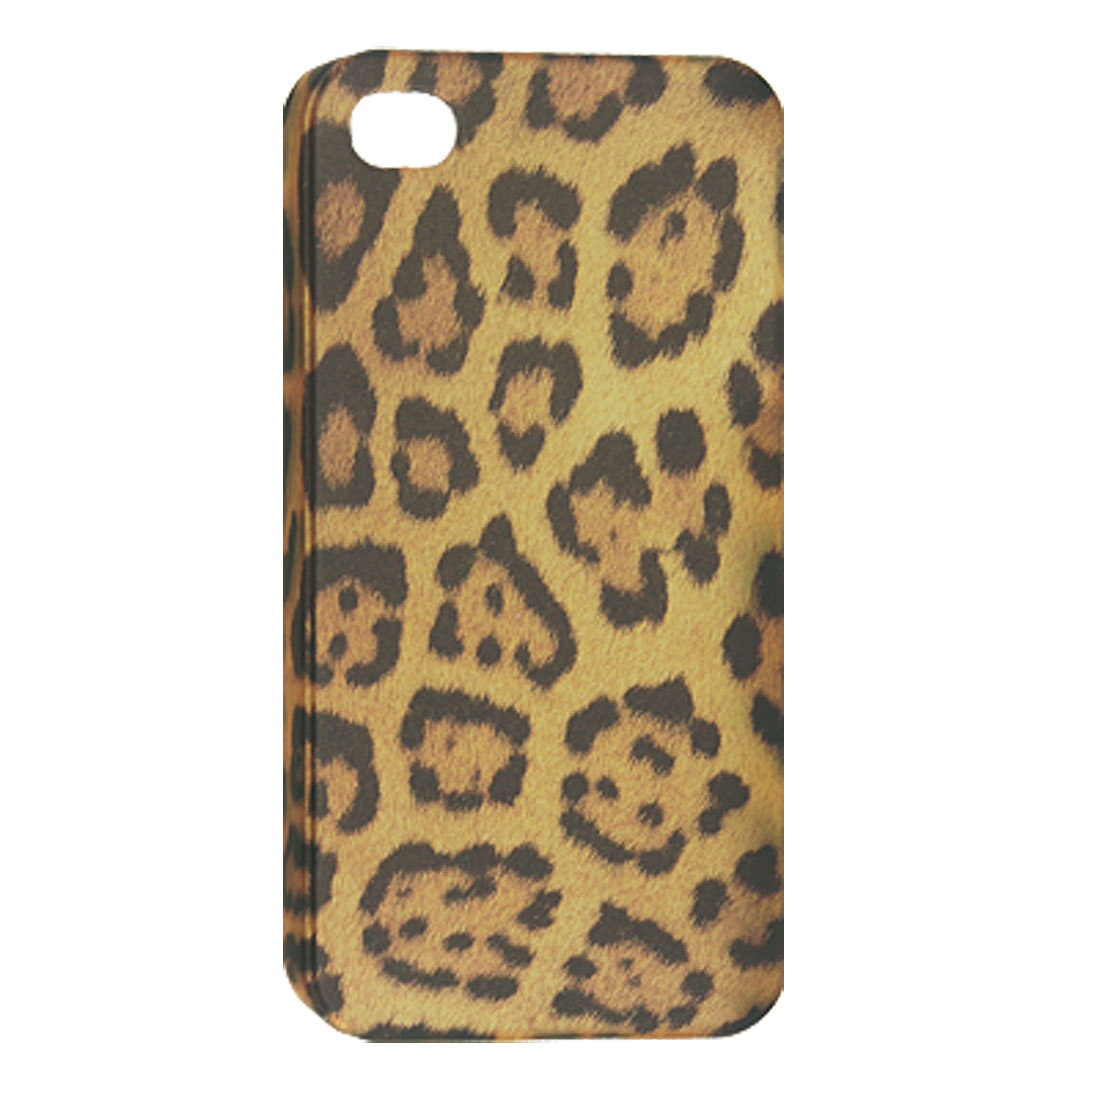 Protective Hard Plastic Leopard Print Back Case for iPhone 4 4G 4S